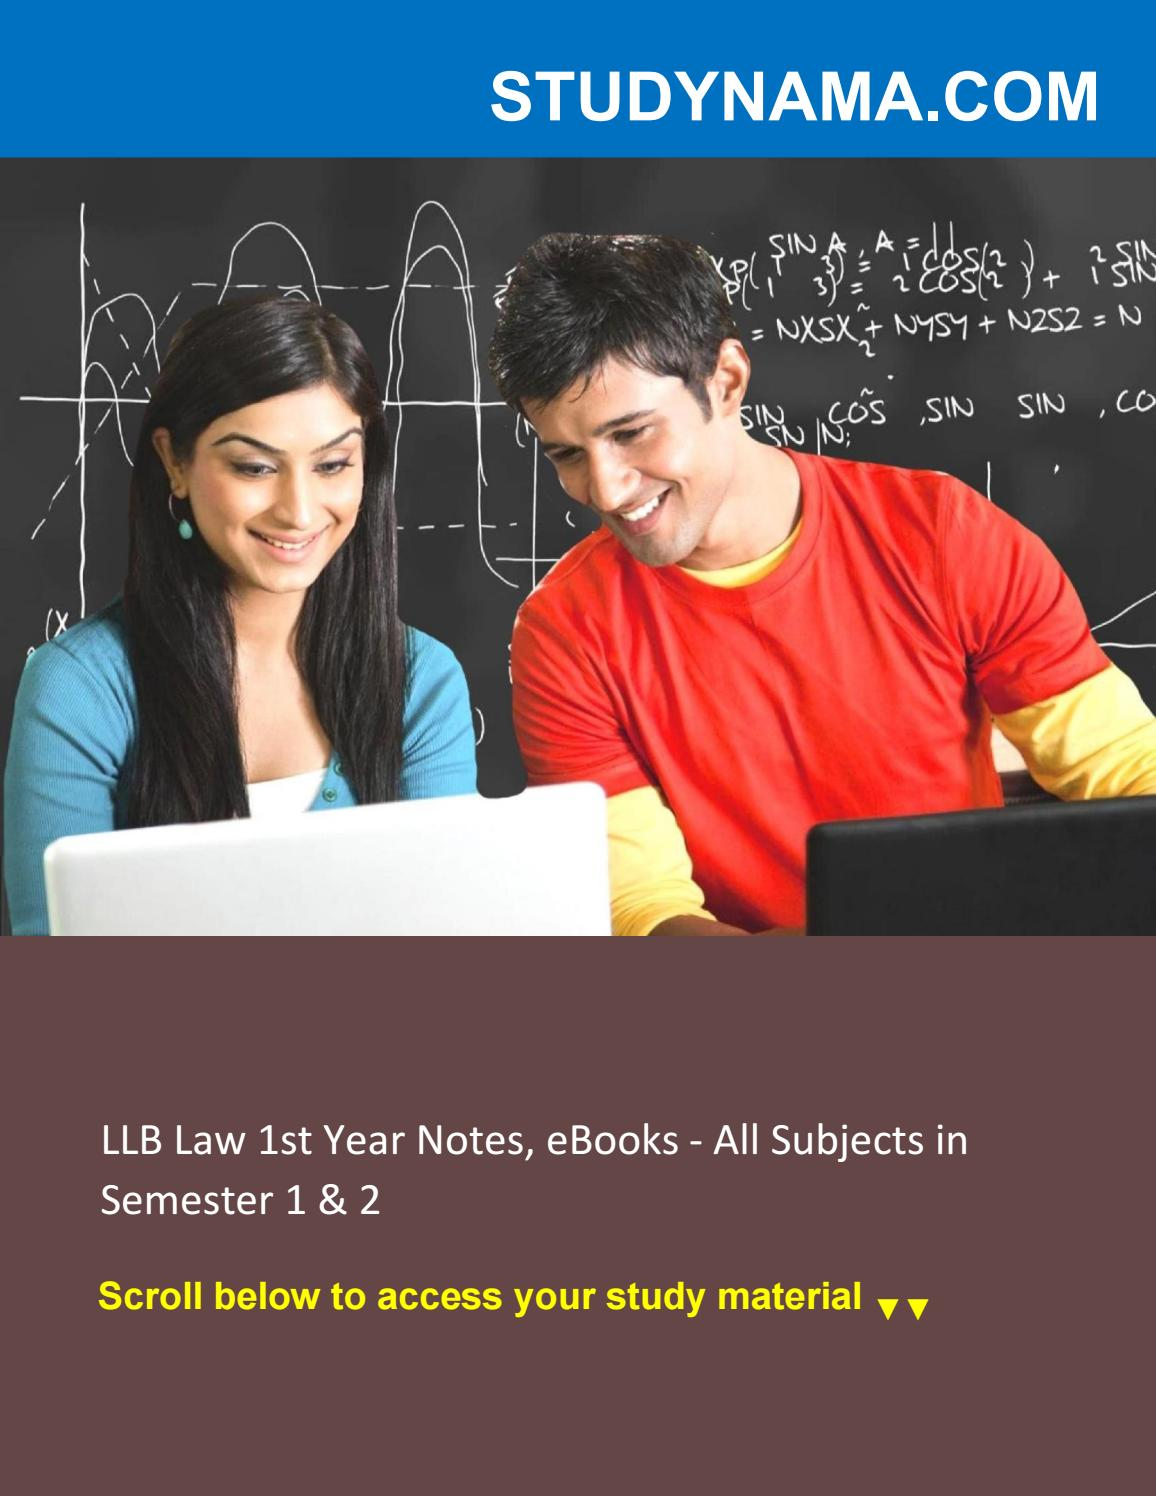 LLB Law 1st Year Notes, eBooks - All Subjects in Semester 1